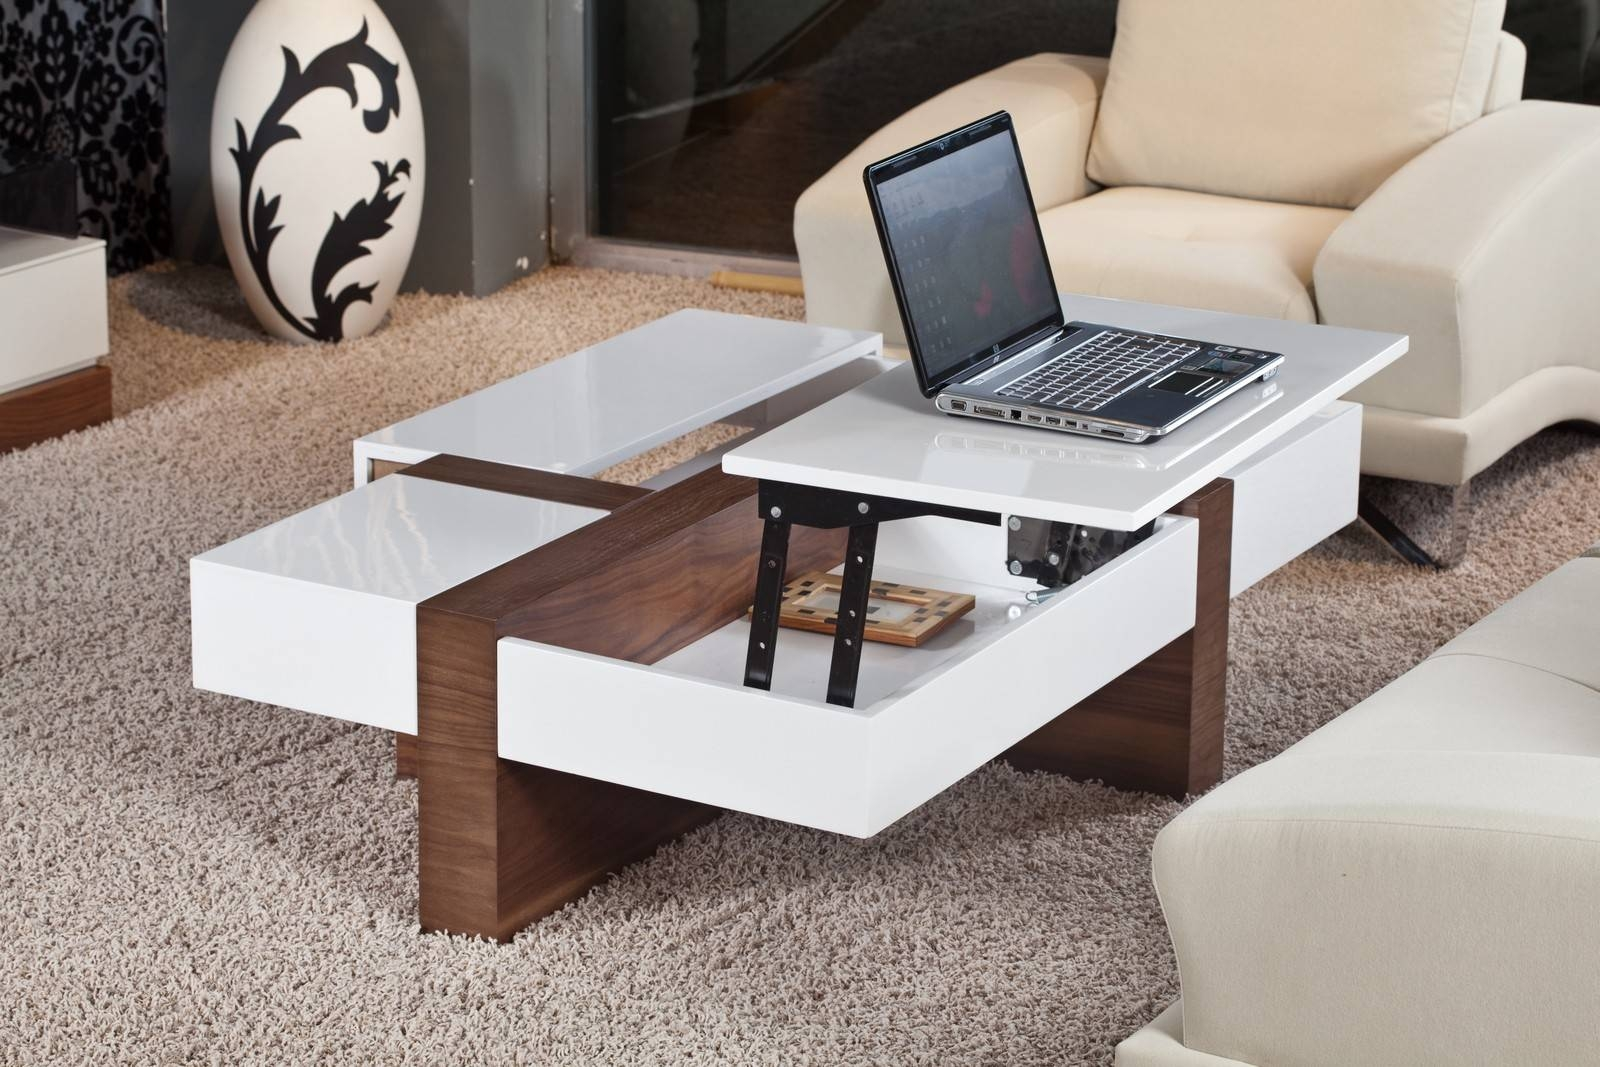 Modern-Lift-Top-Coffee-Table : Modern Lift Top Coffee Table Design within Modern Coffee Table (Image 13 of 15)